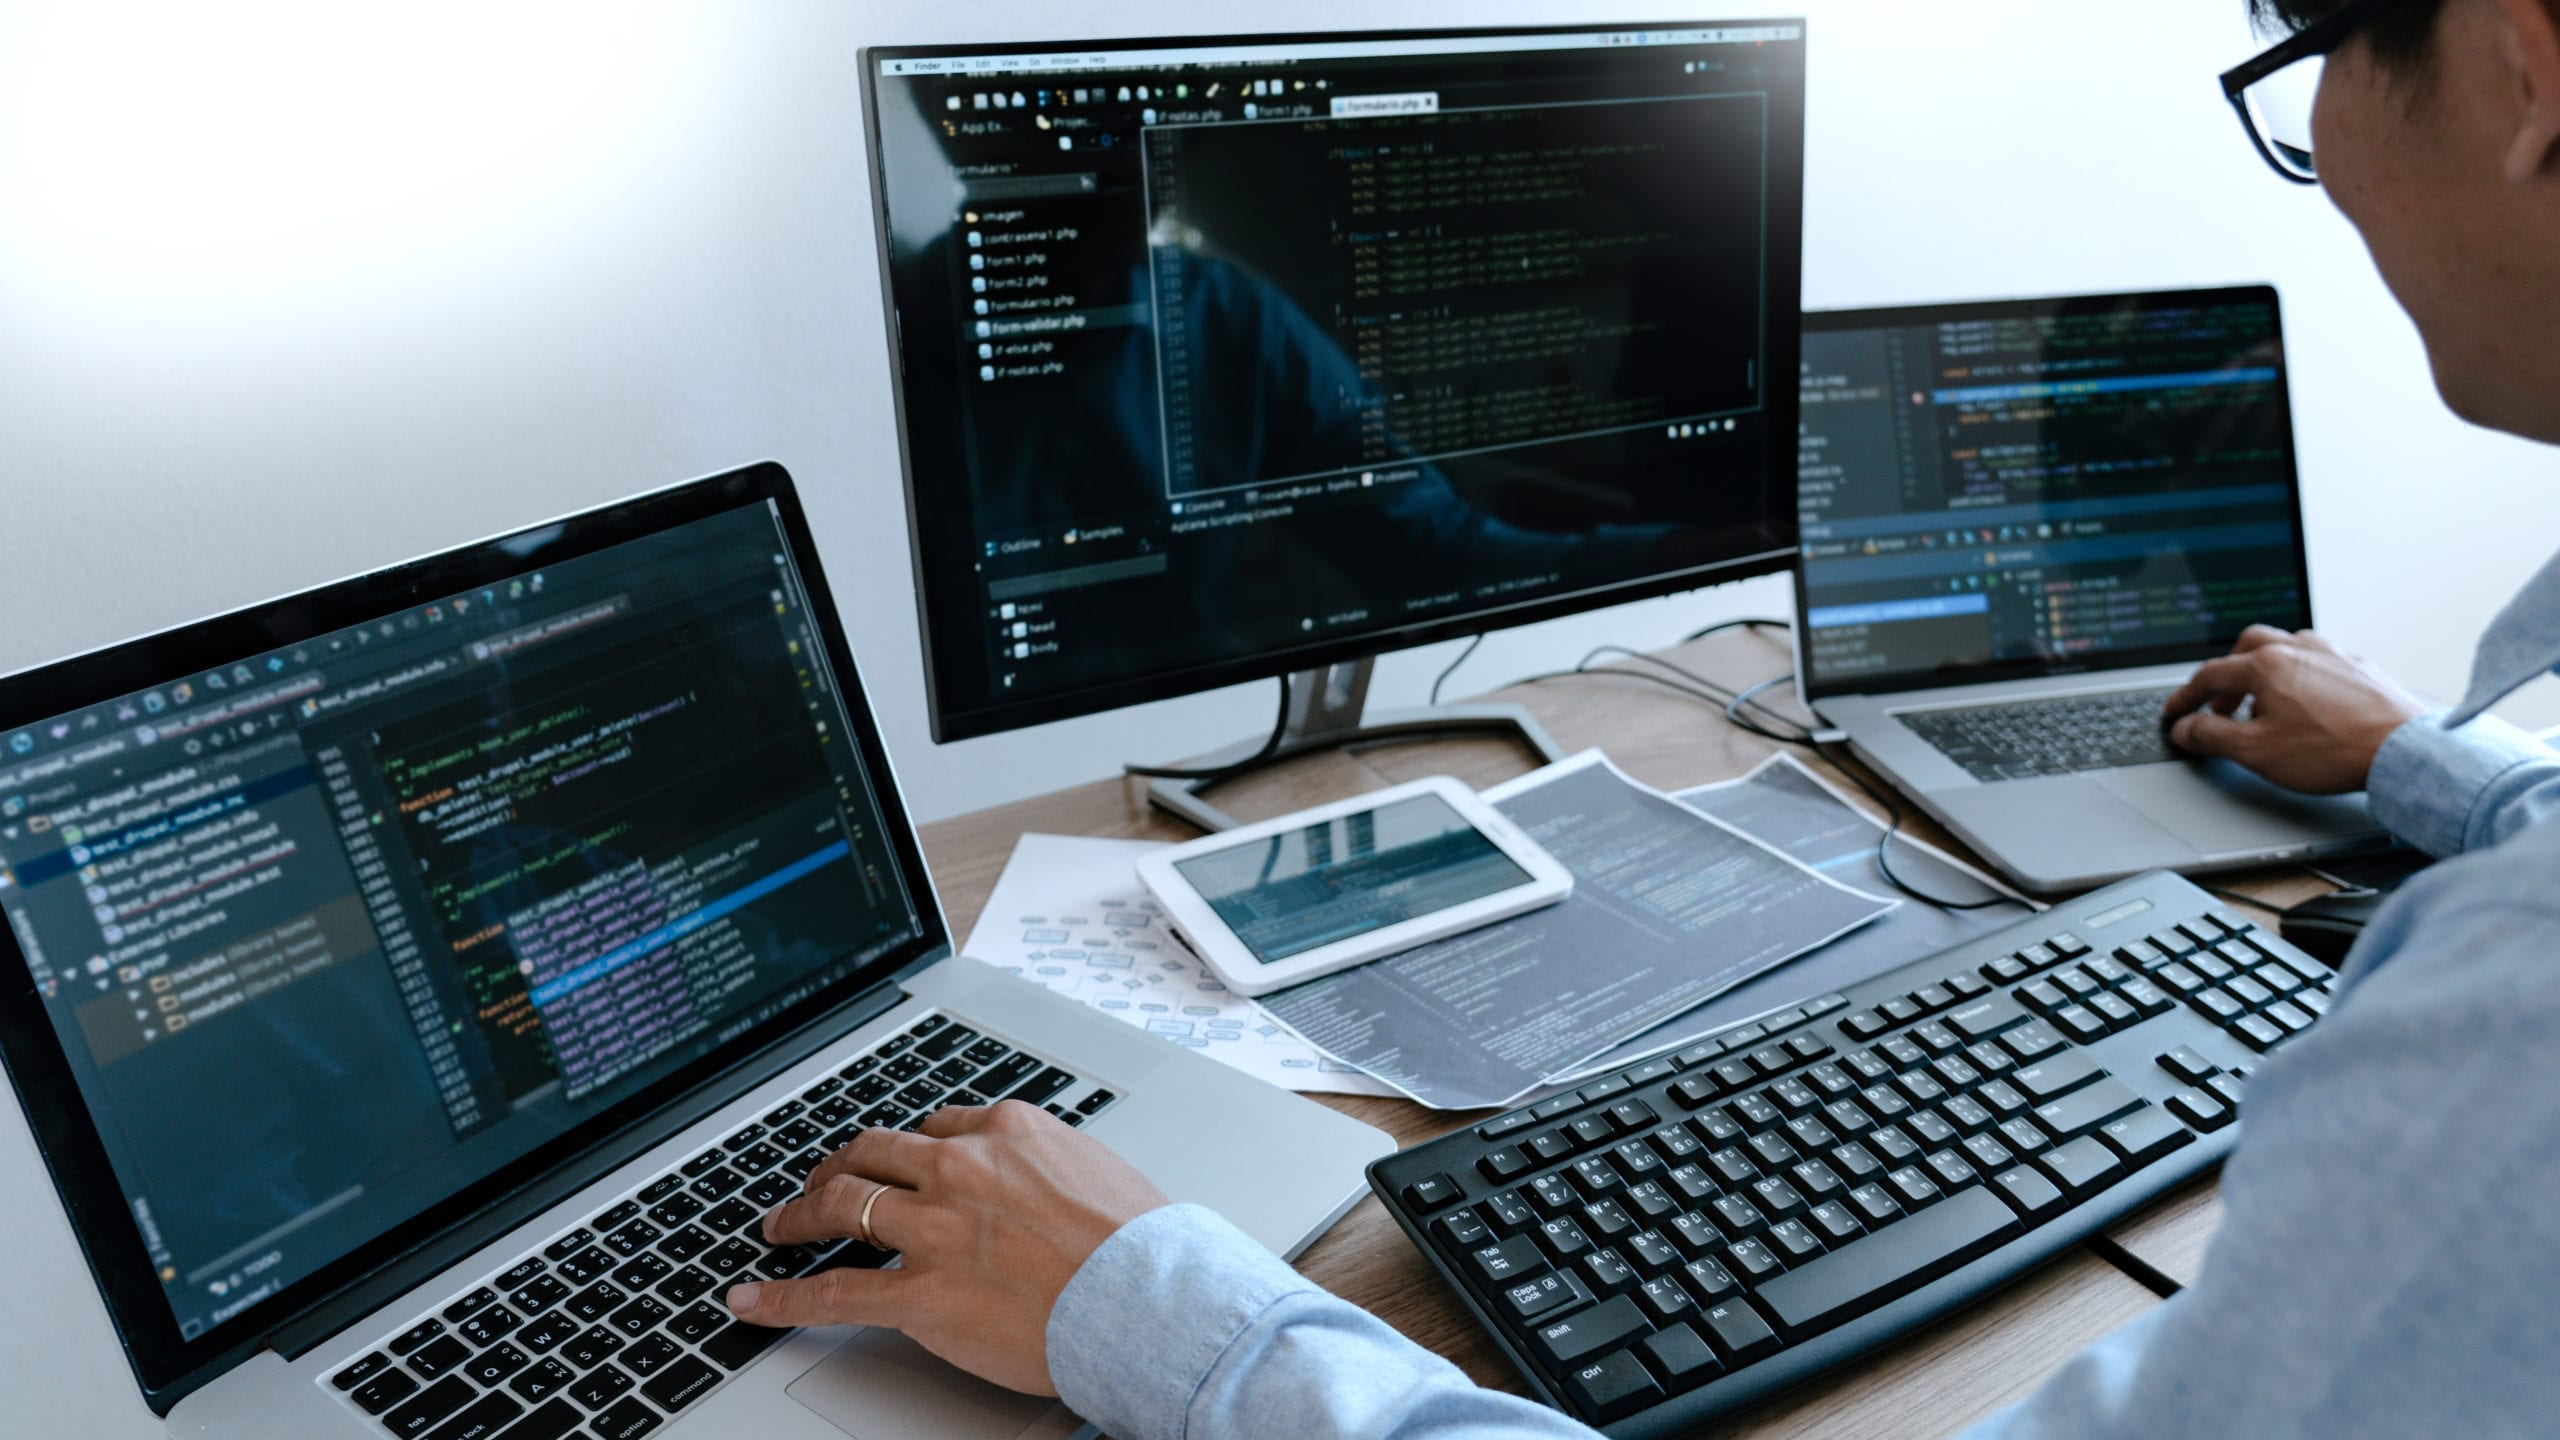 Our extensive knowledge of multiple systems allows us to sell, install, and support any software or hardware needs your business has.